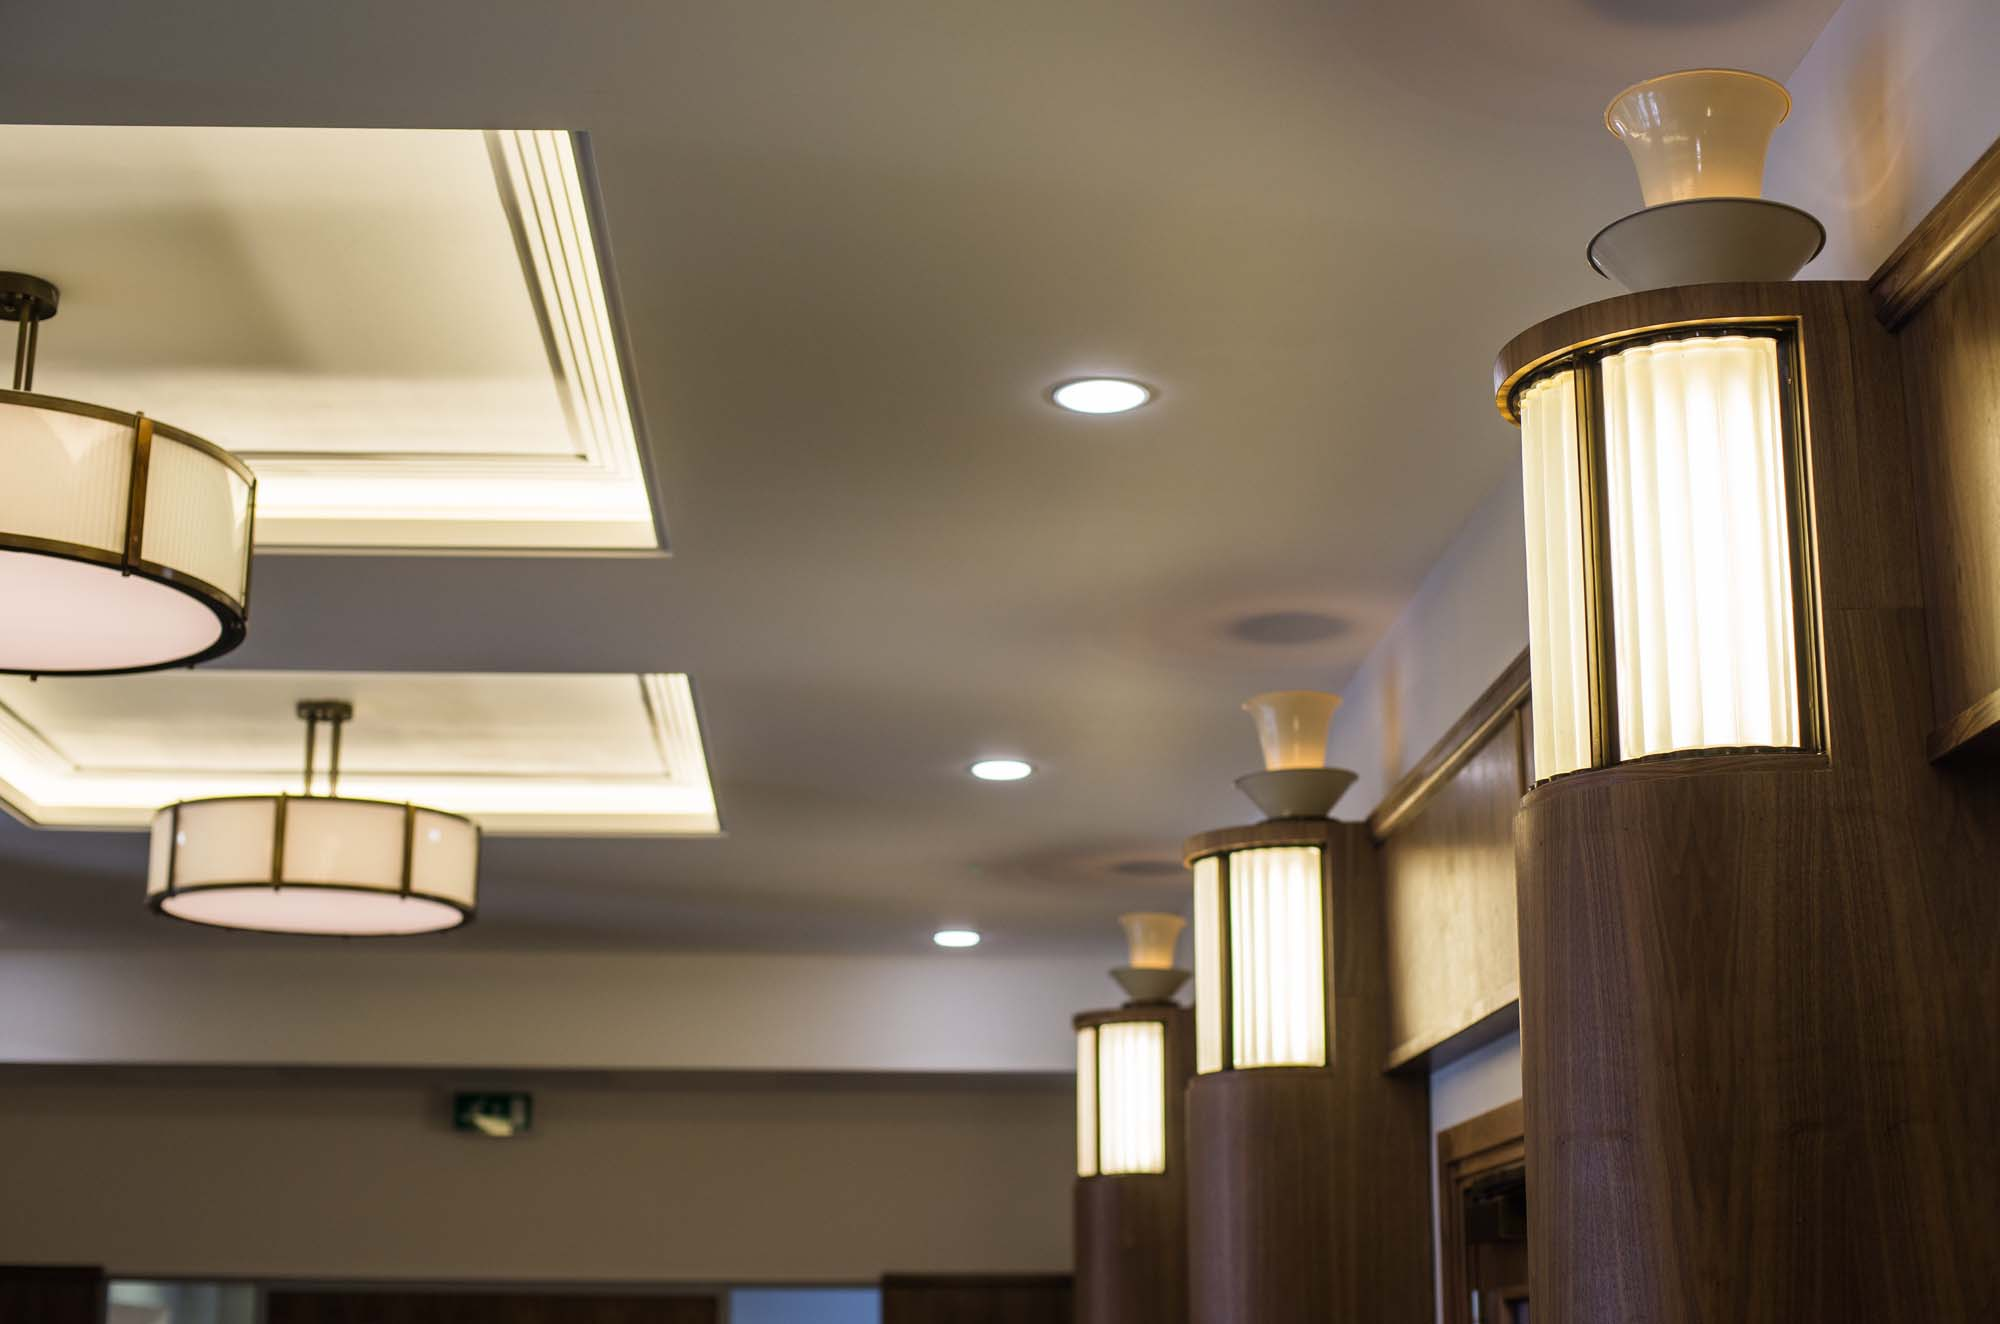 The interior of City Hall with Art Deco fittings and fixtures -